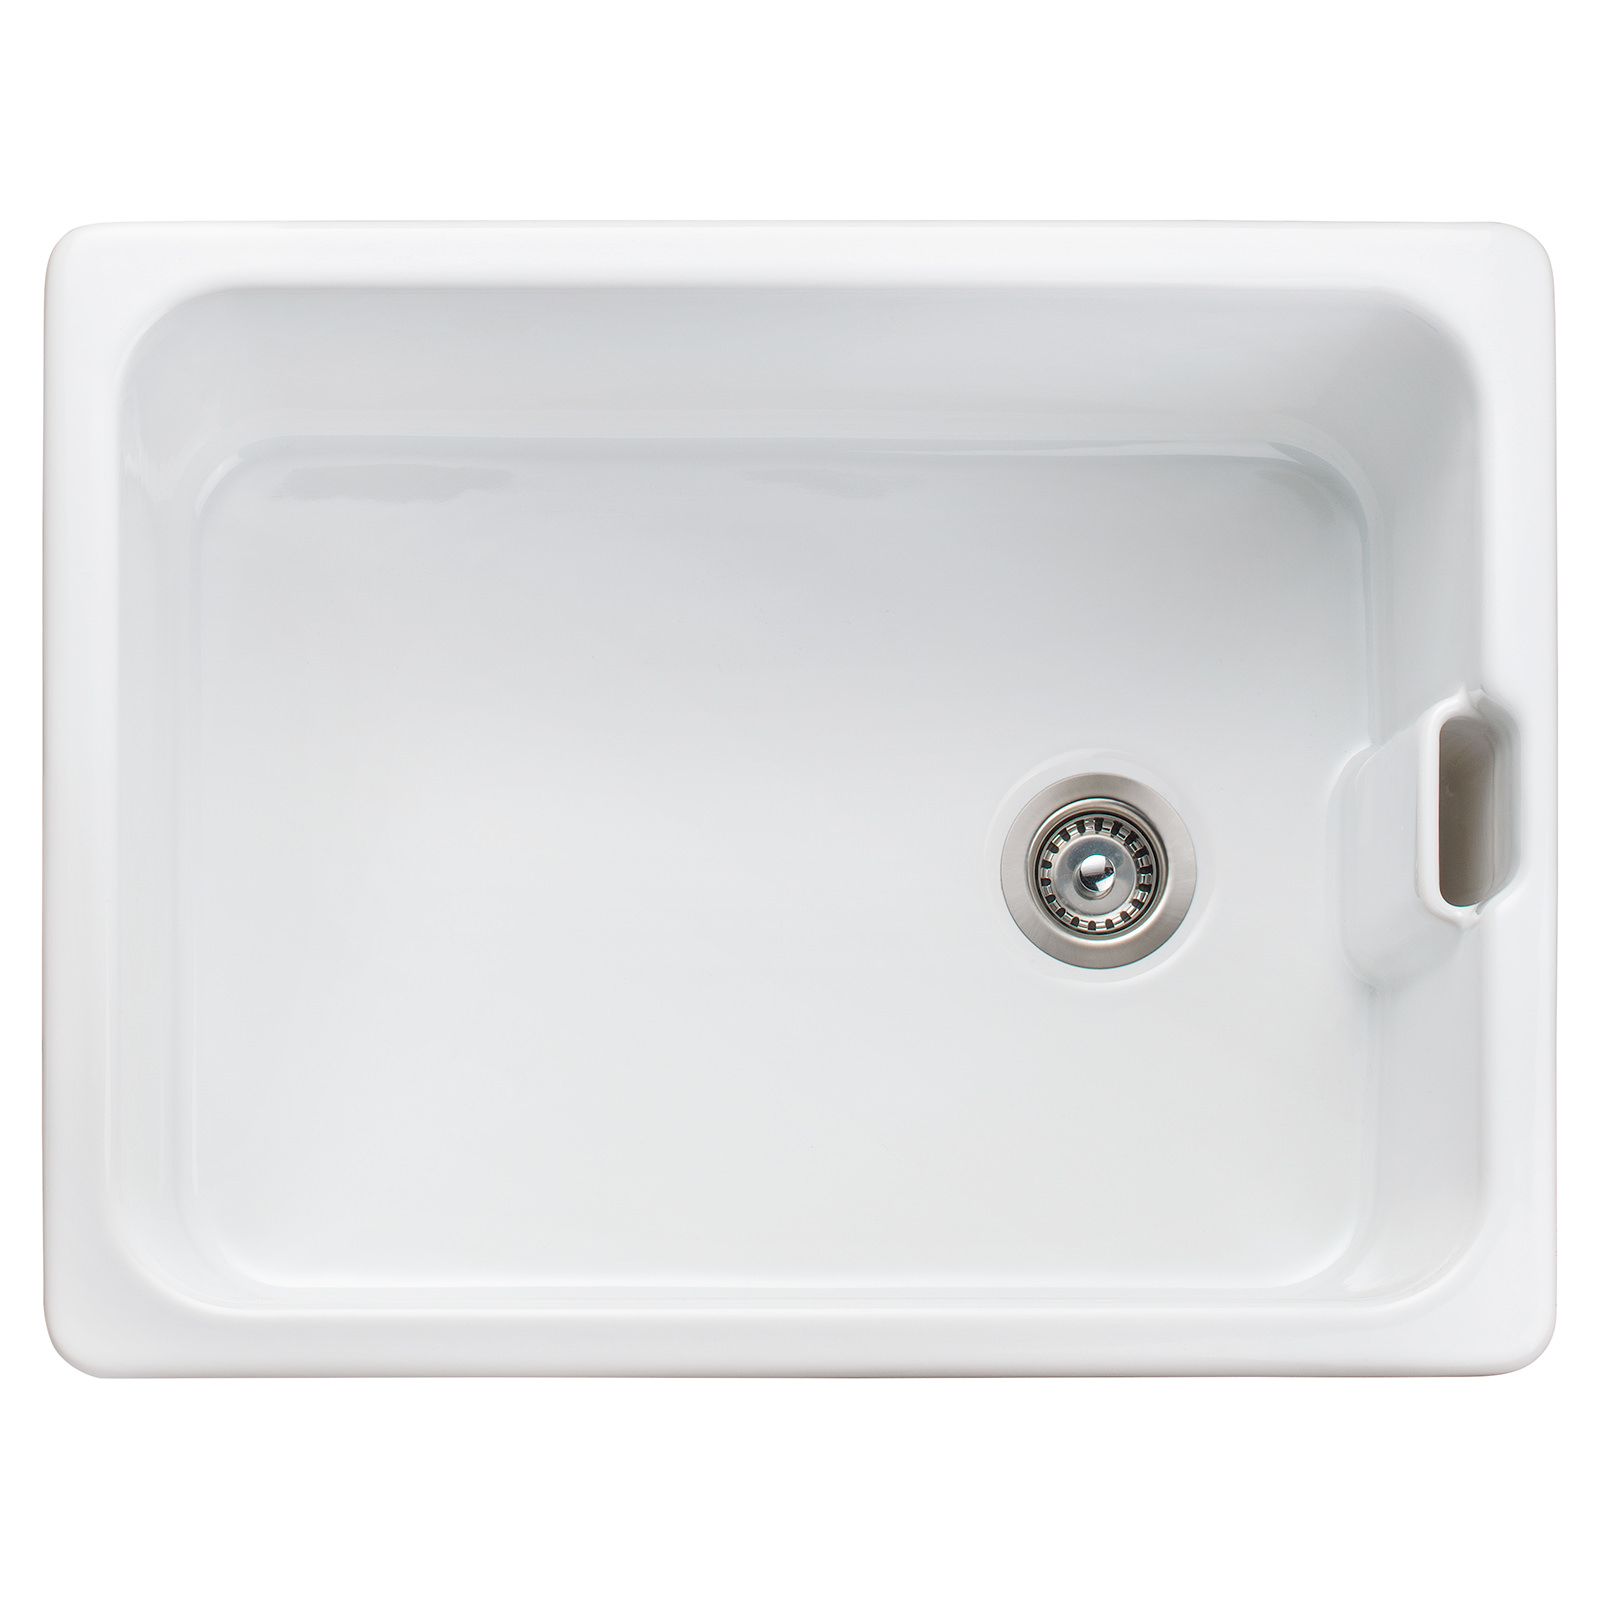 Rangemaster Farmhouse Belfast 595 X 455mm Fire Clay Ceramic 1.0B Sink